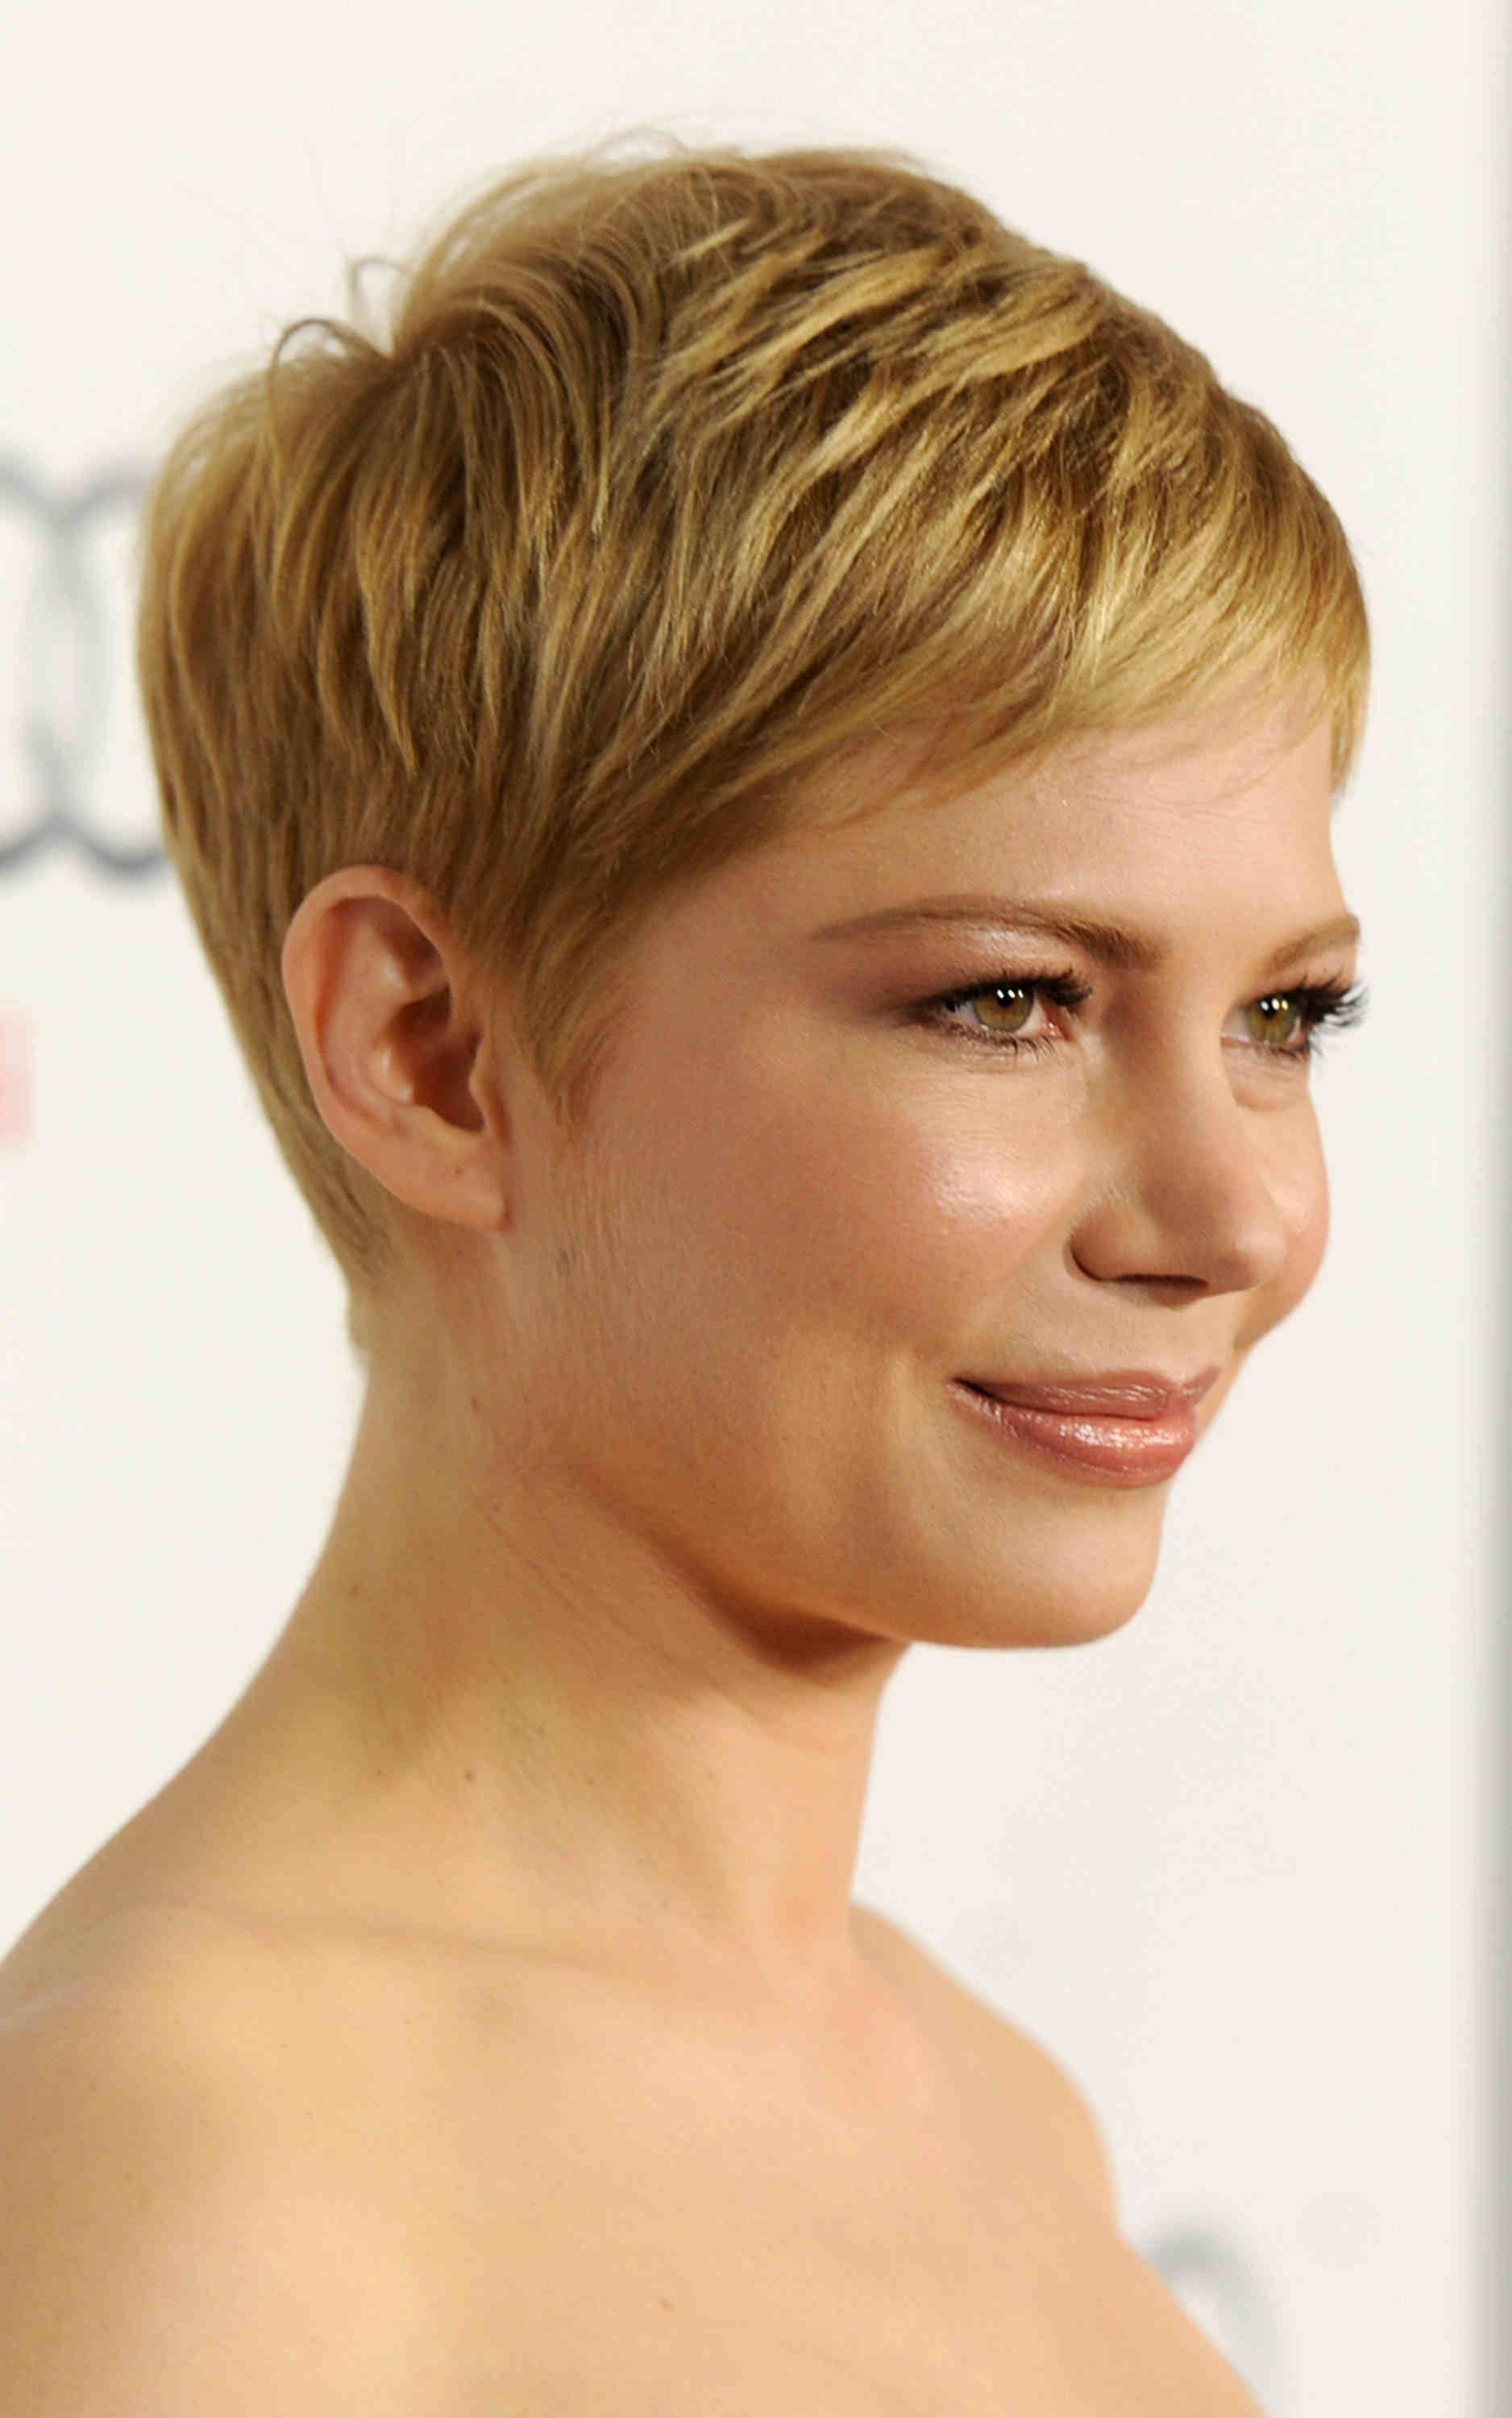 Pin By Jean Coutu On Hair Inspiration Short Hair With Layers Short Hair Trends Short Hair Styles